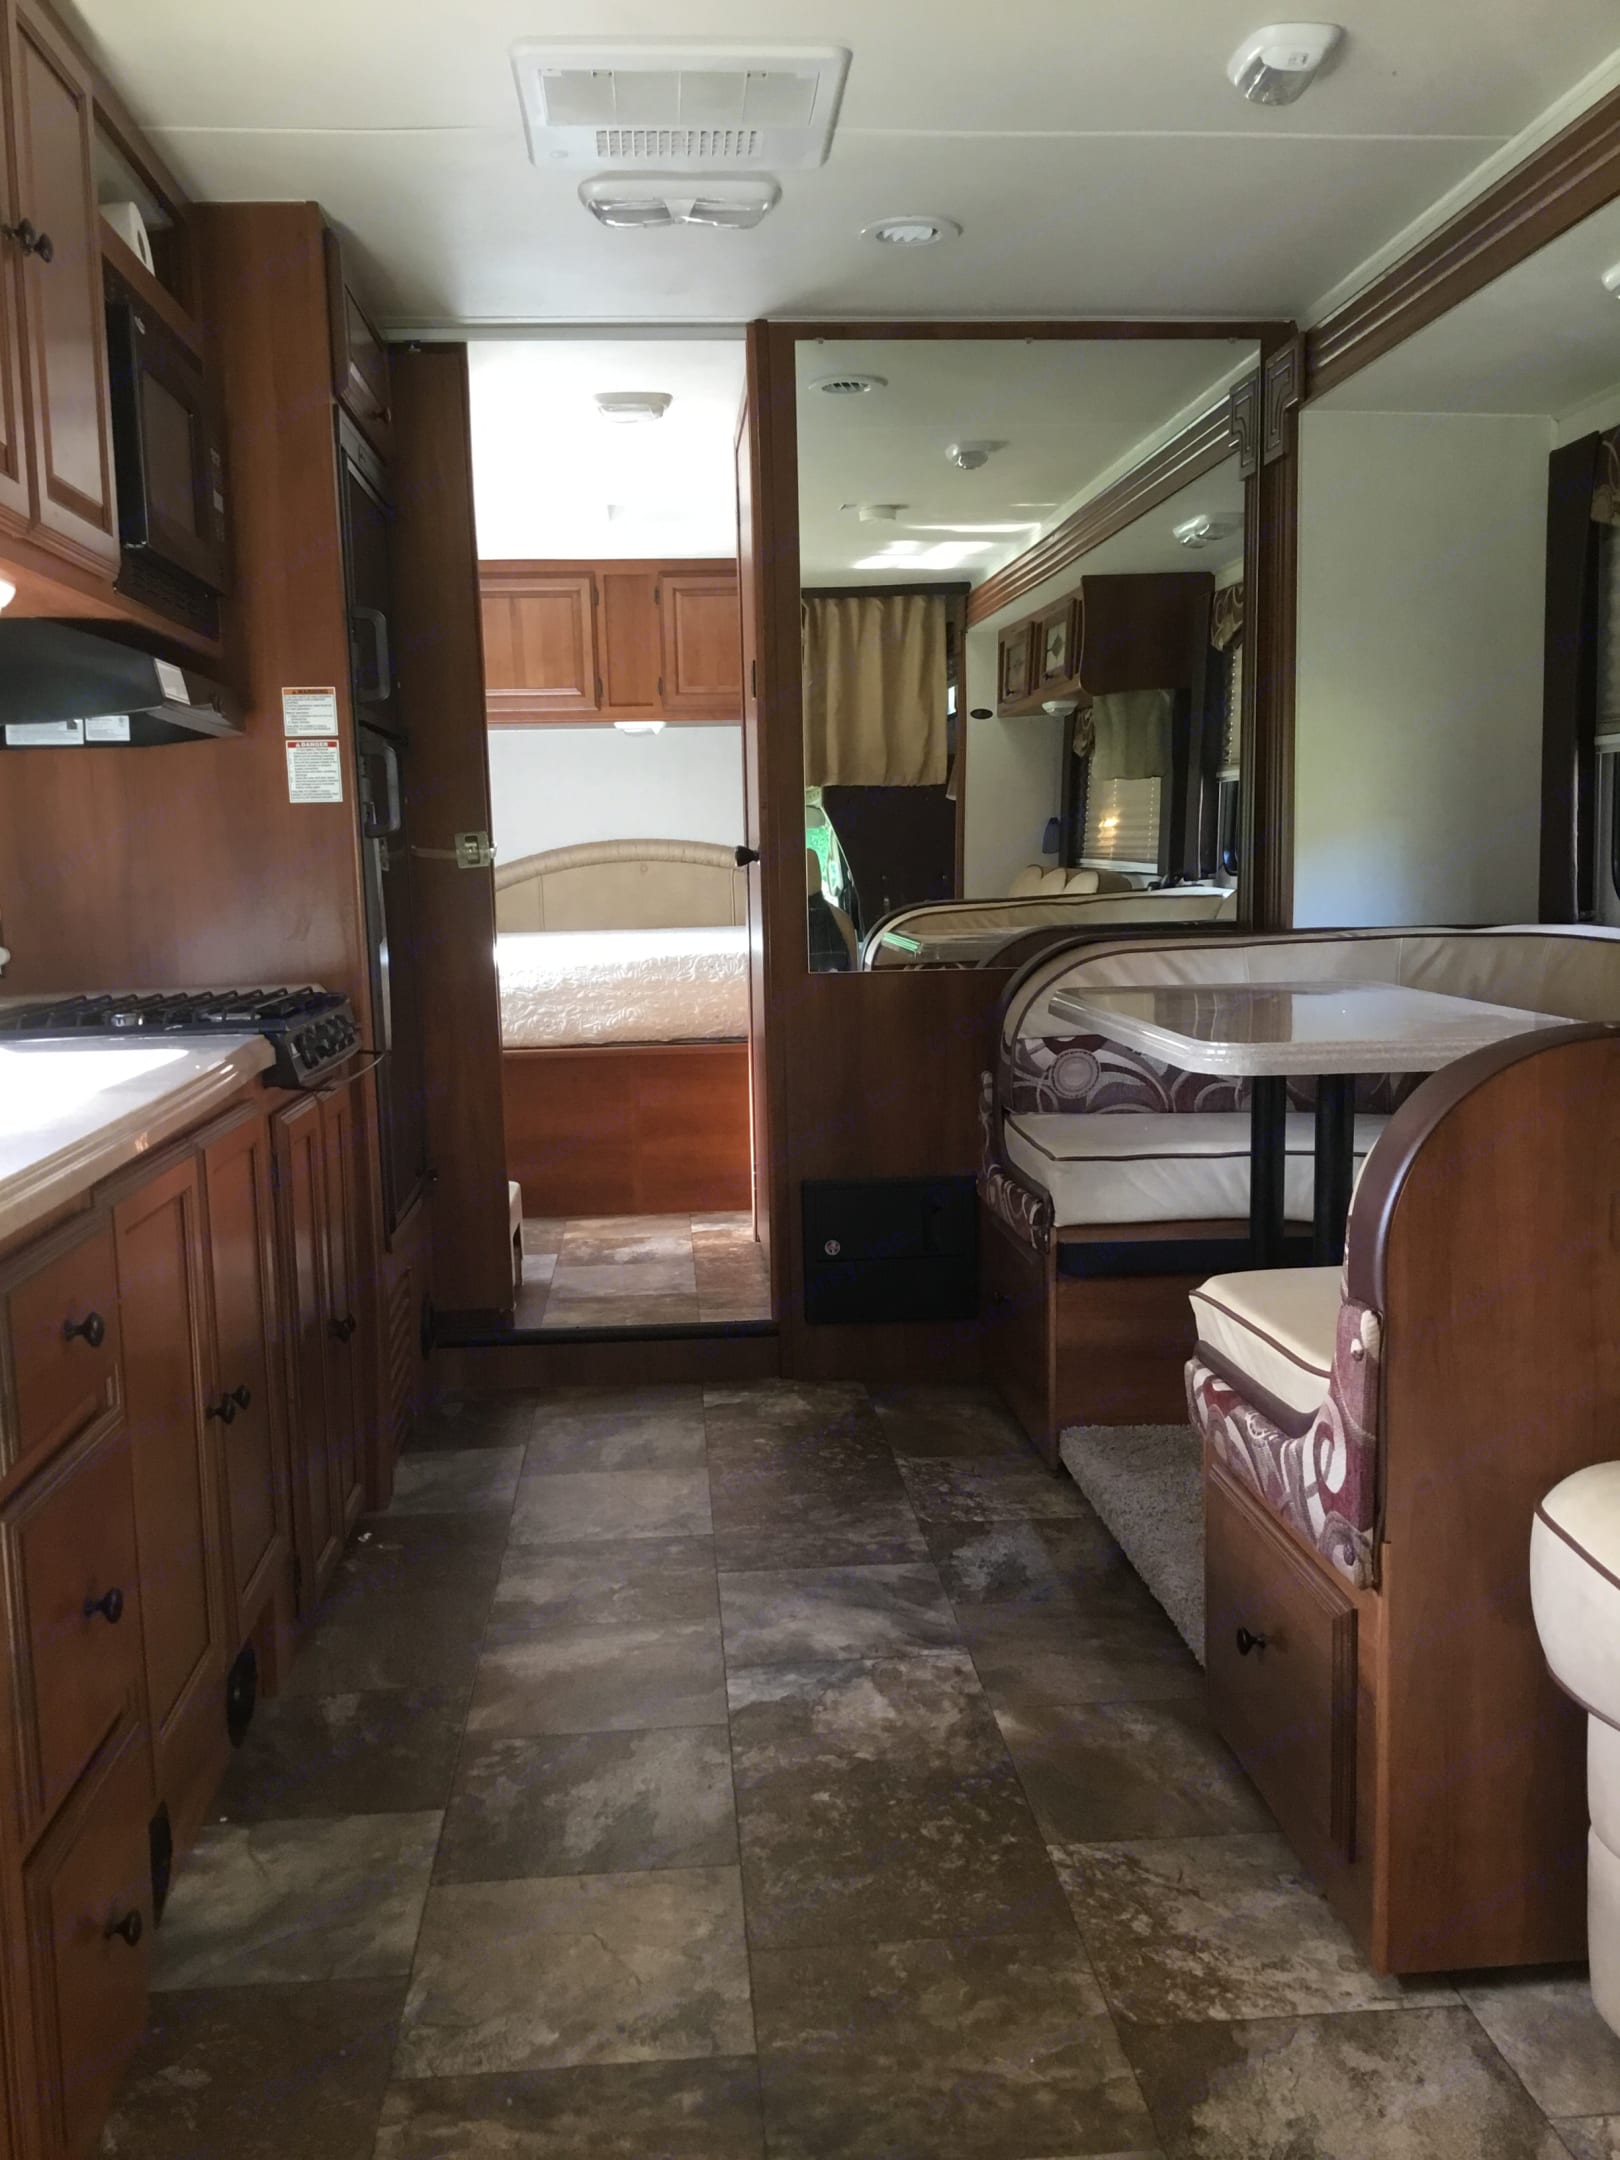 Table to the right converts into another bed. Coachmen Leprechaun 2013